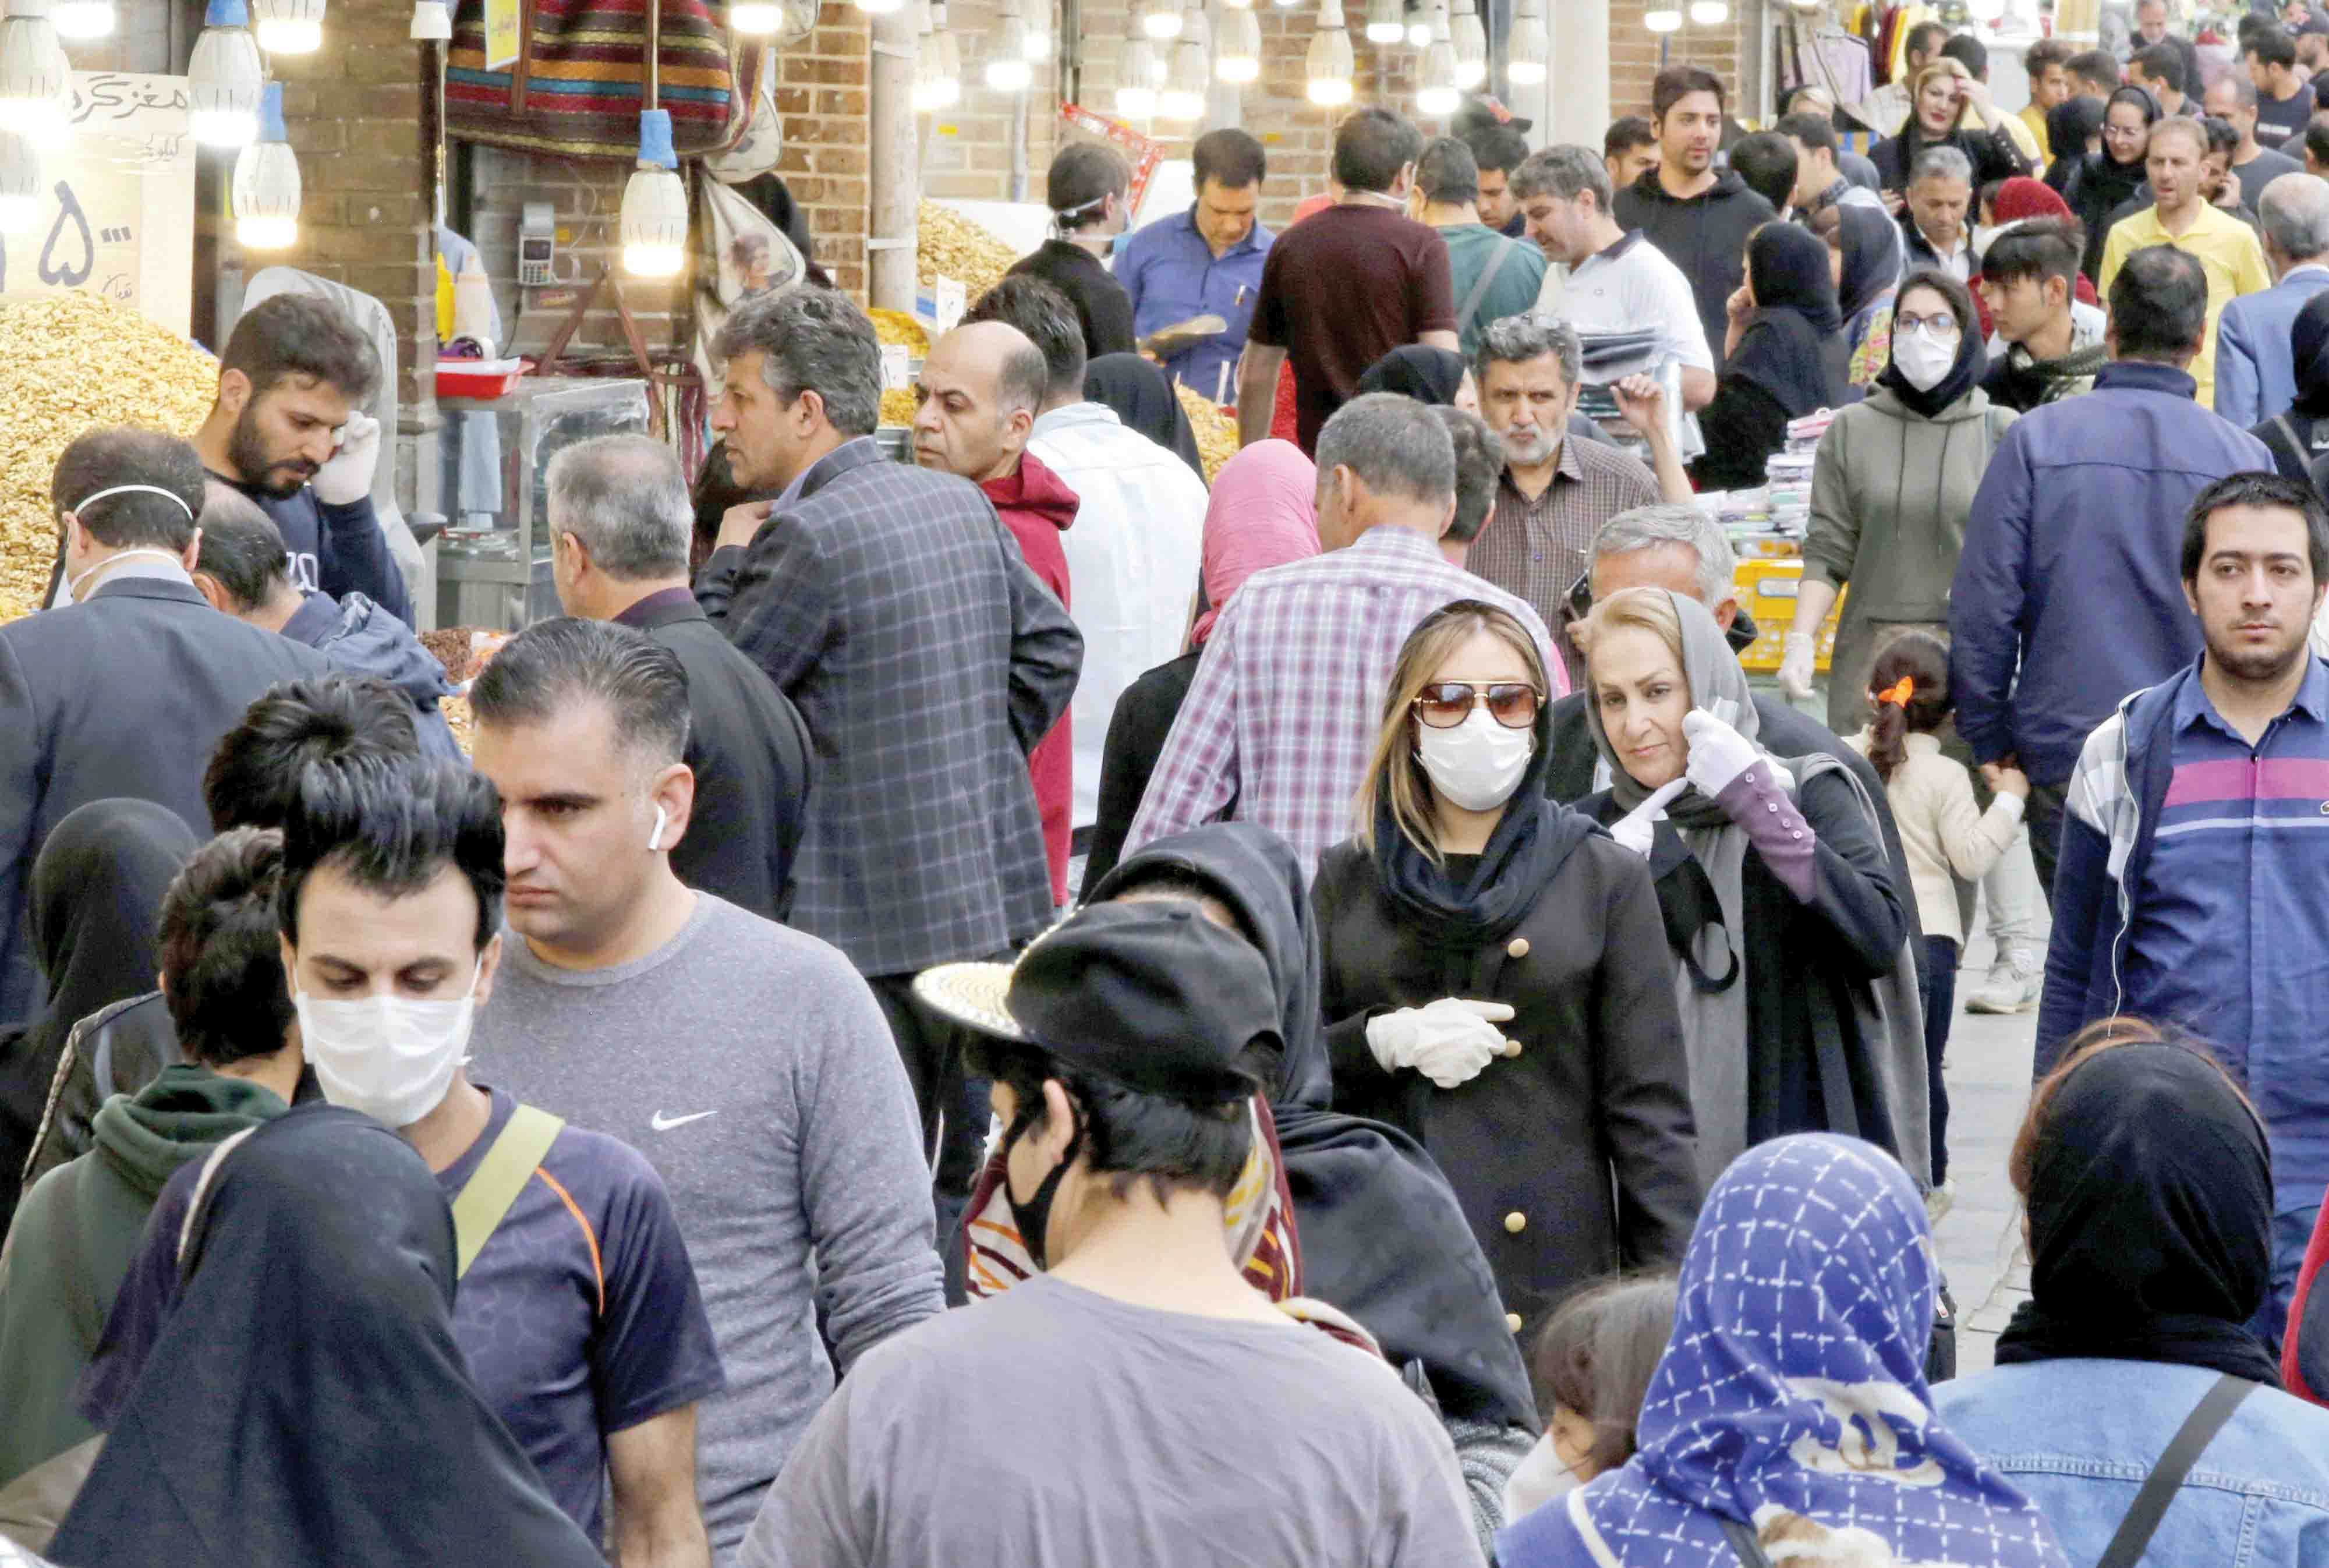 A crowd of  Iranians, some only wearing protective masks, at Tehran's grand bazaar, despite the COVID-19 coronavirus pandemic. (AFP)